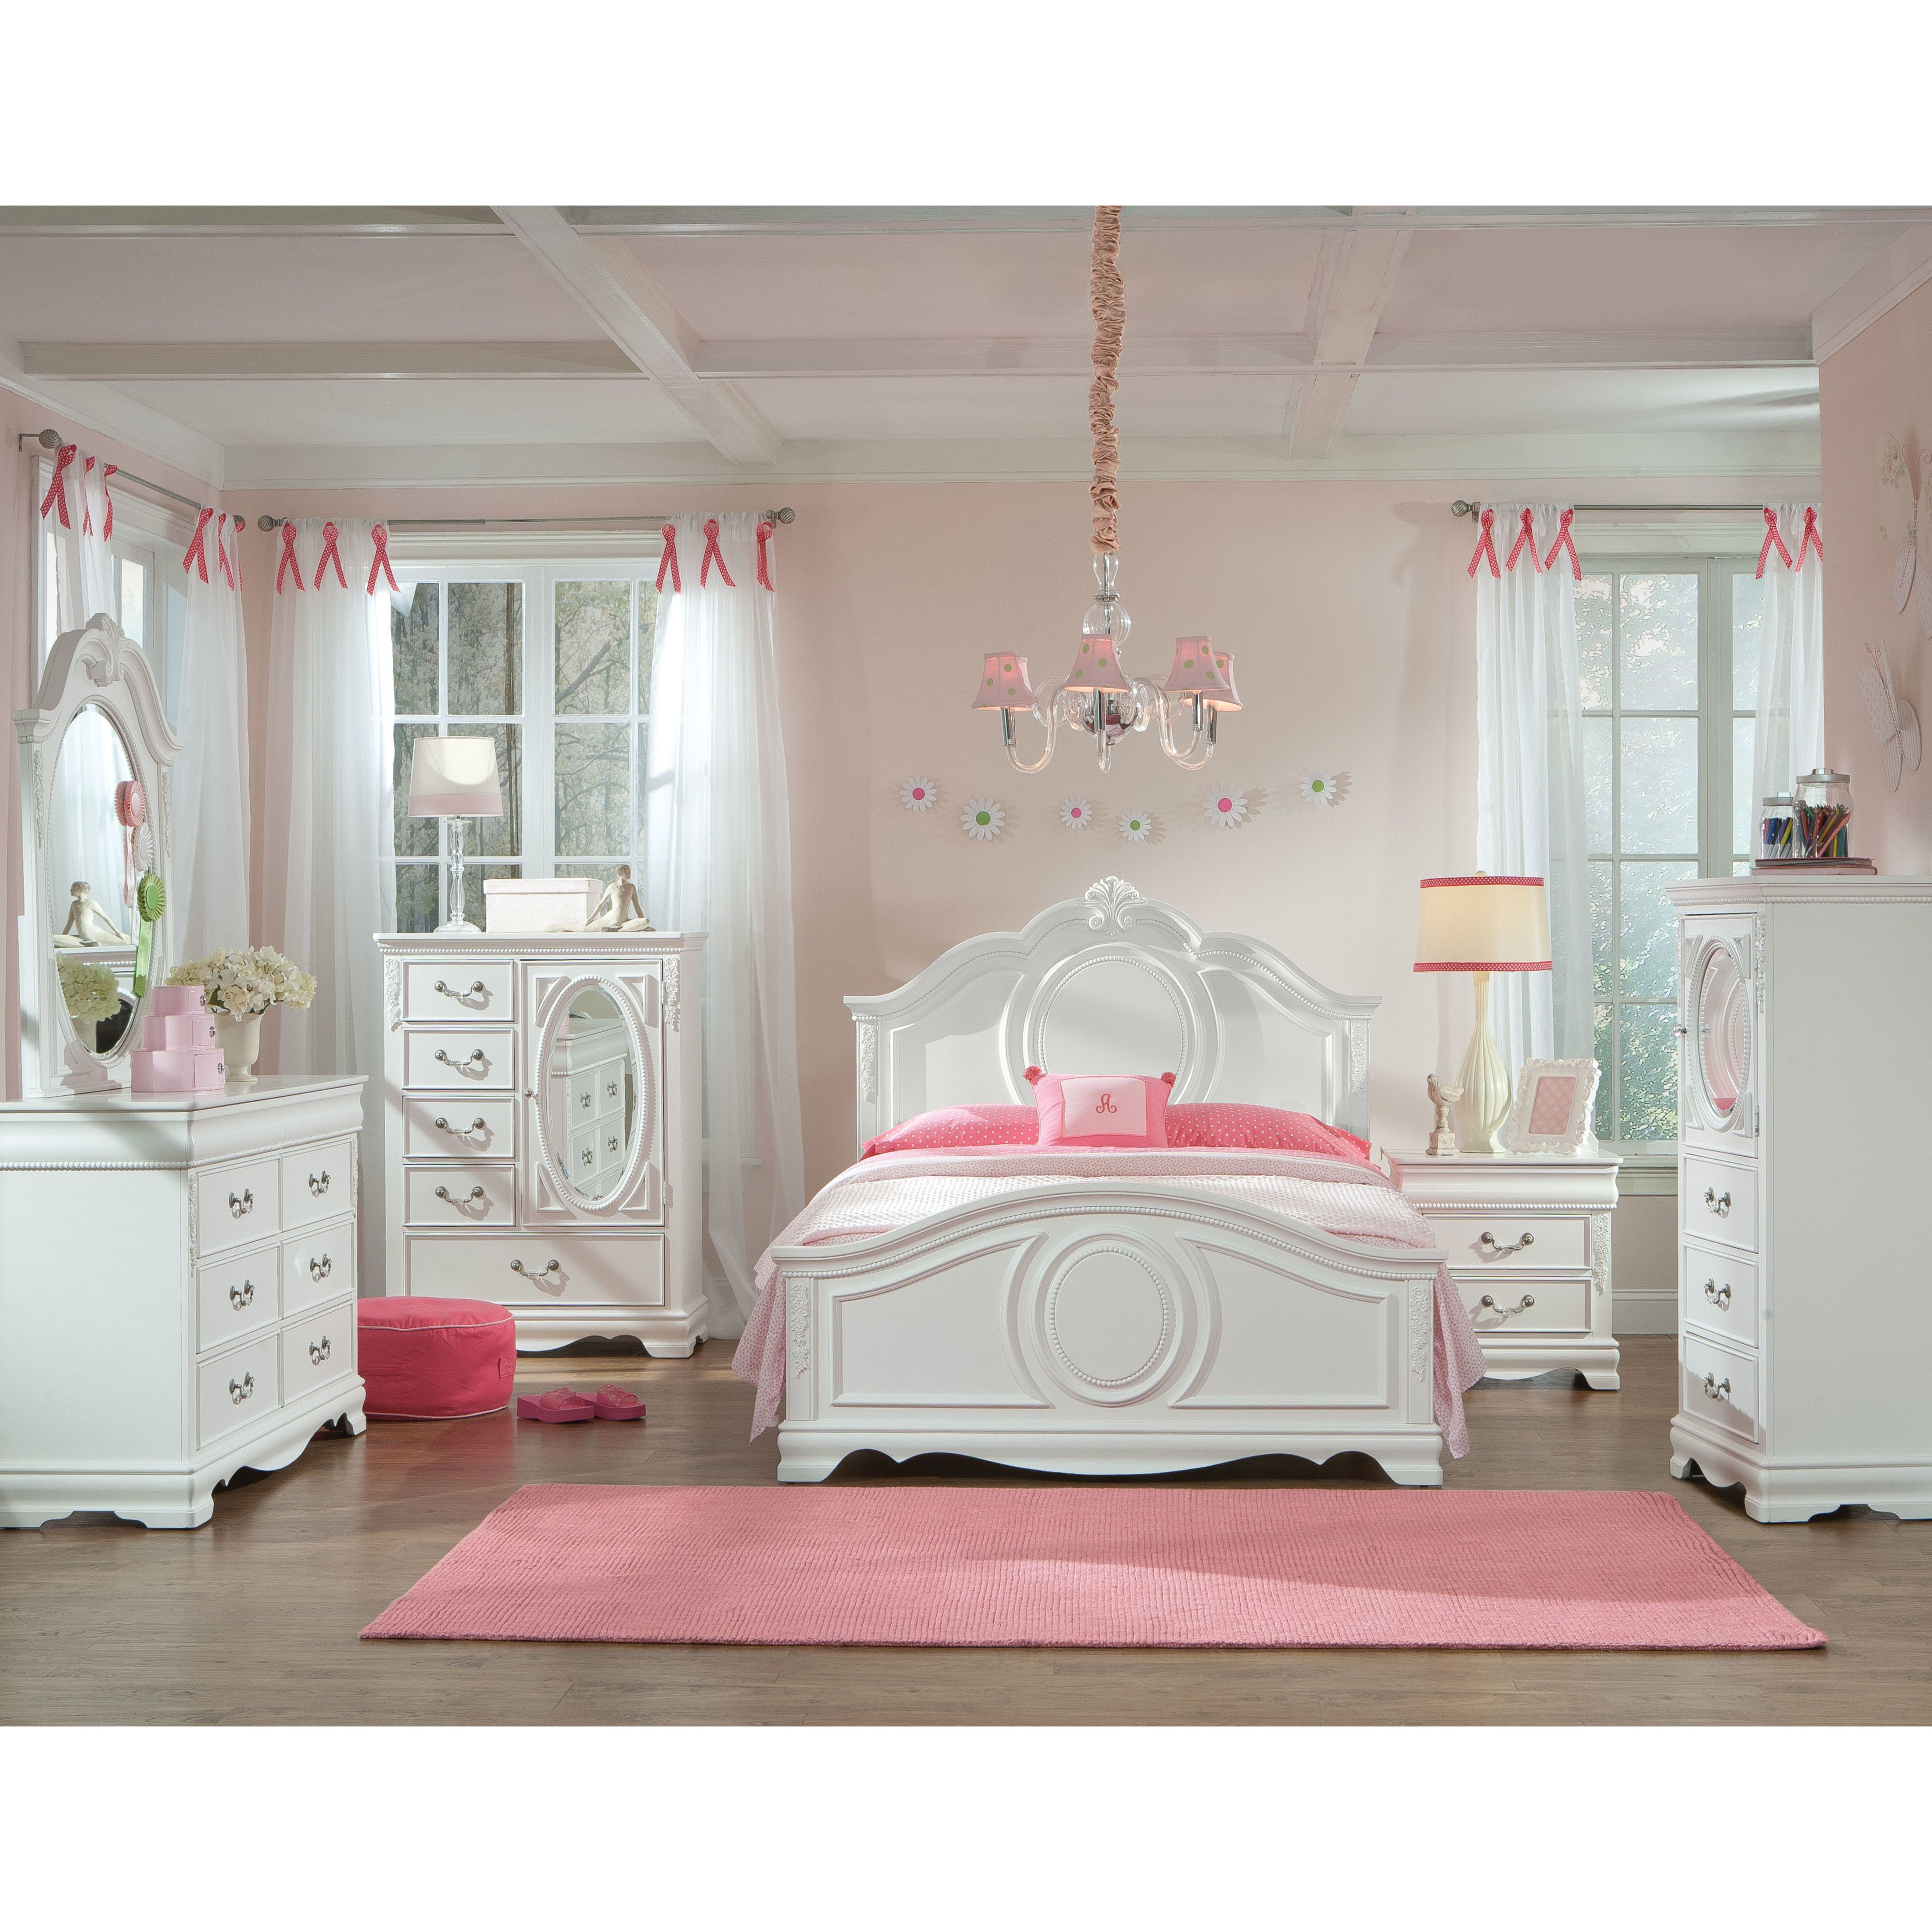 Simple Toddler Girl Bedroom Sets Decor